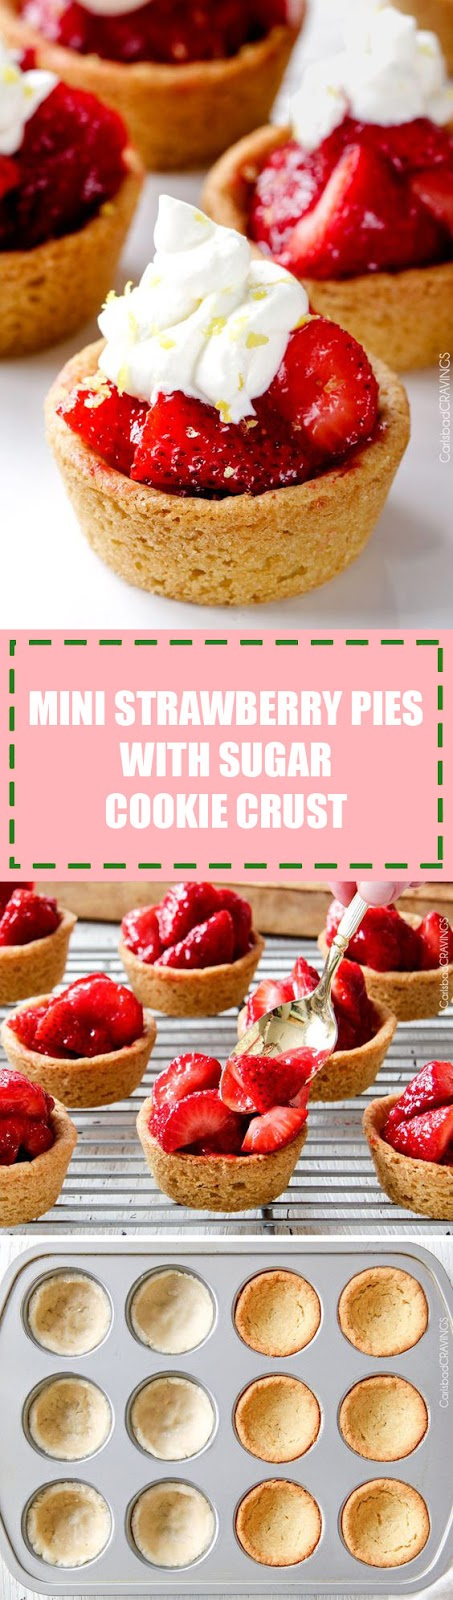 Mini Strawberry Pies With Sugar Cookie Crust